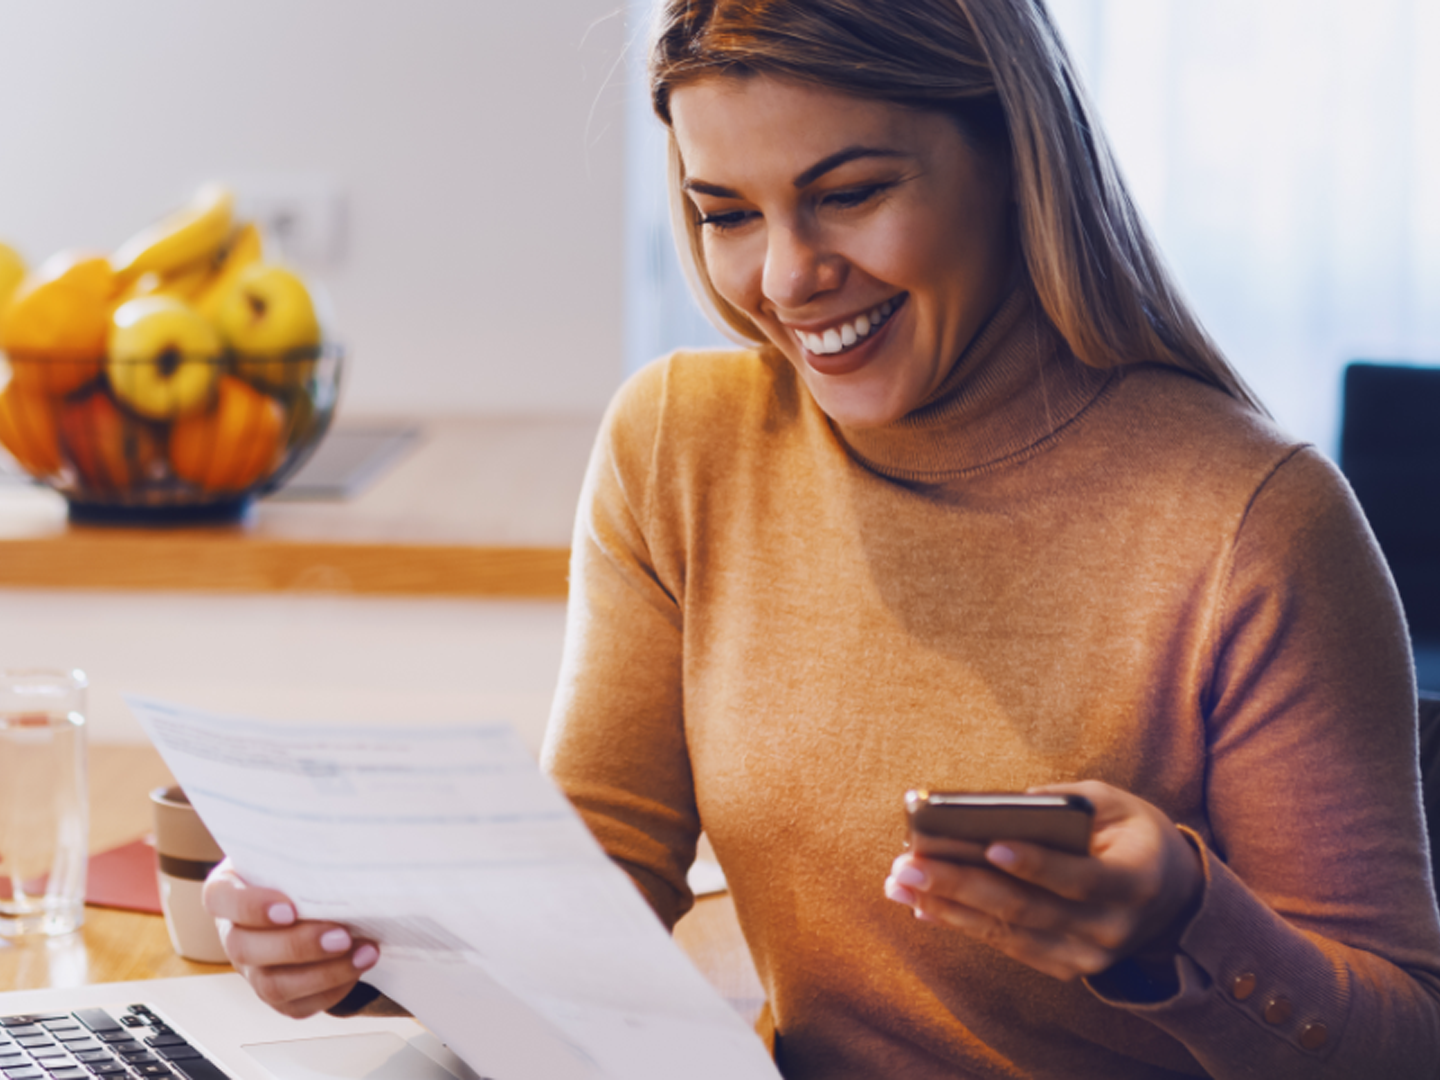 woman with mobile phone reviewing savings account statement with flexible options and single point of contact sterling banker